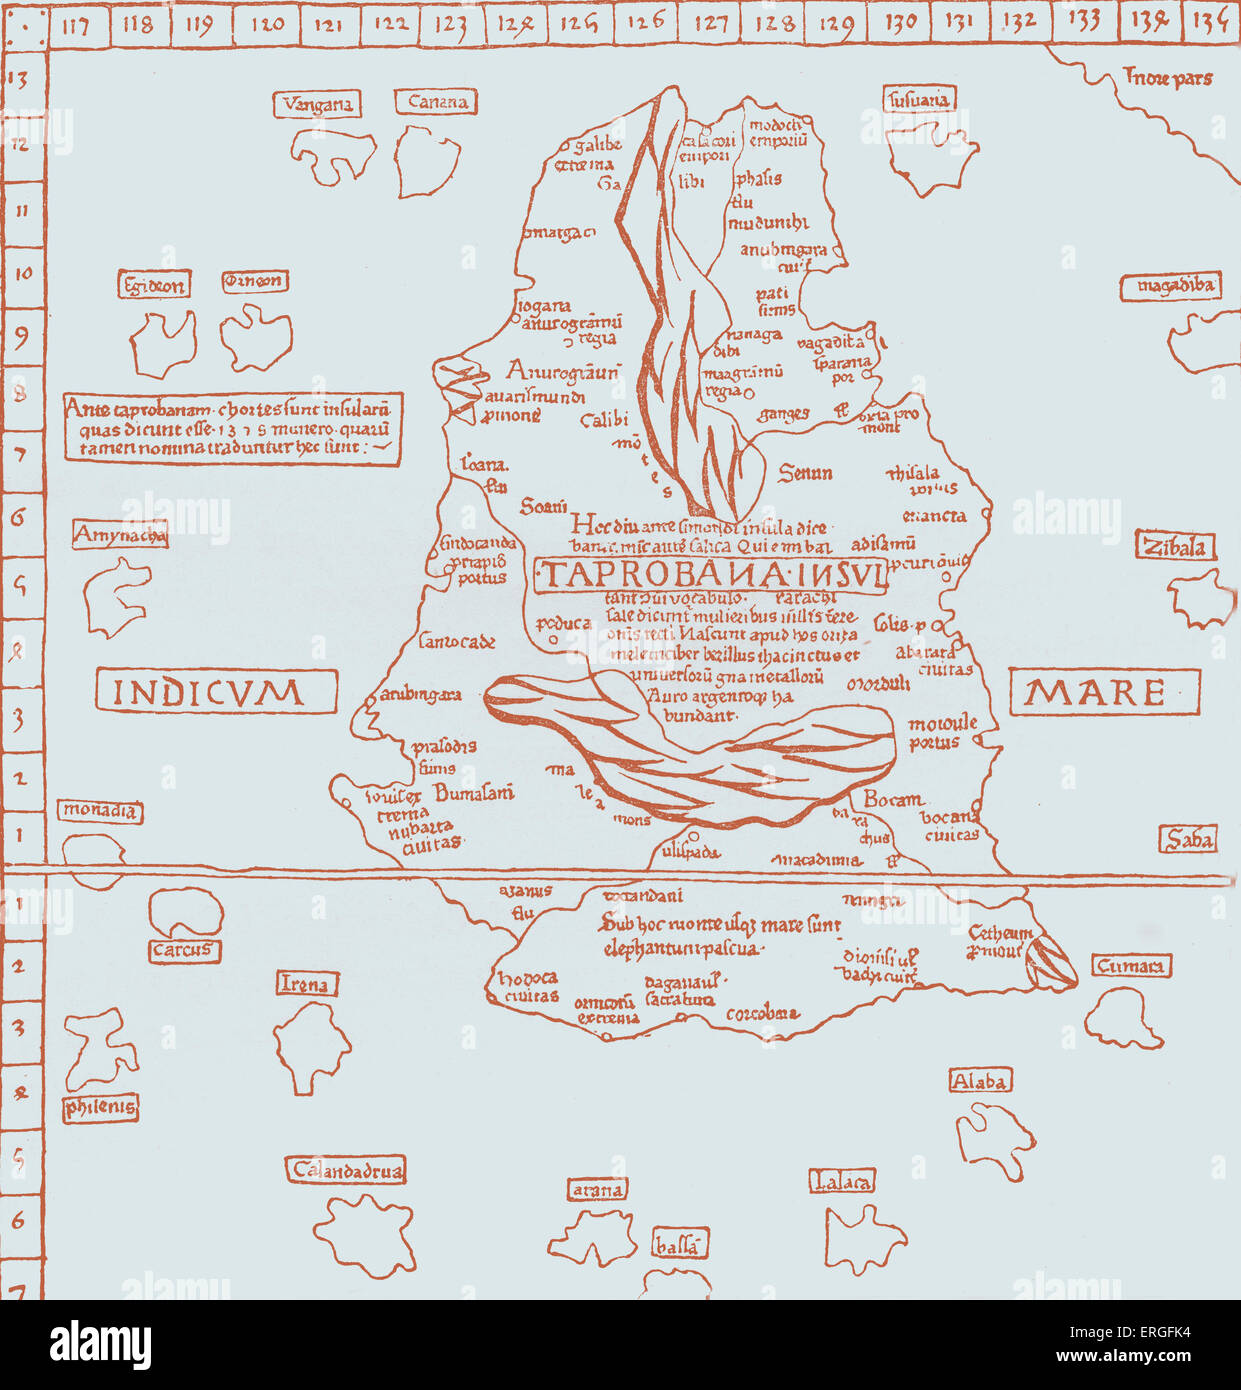 'Map of the Island of Taprobana' - from reduced fac-simile of map in Ptolemy's Georgraphy, Latin edition, - Stock Image